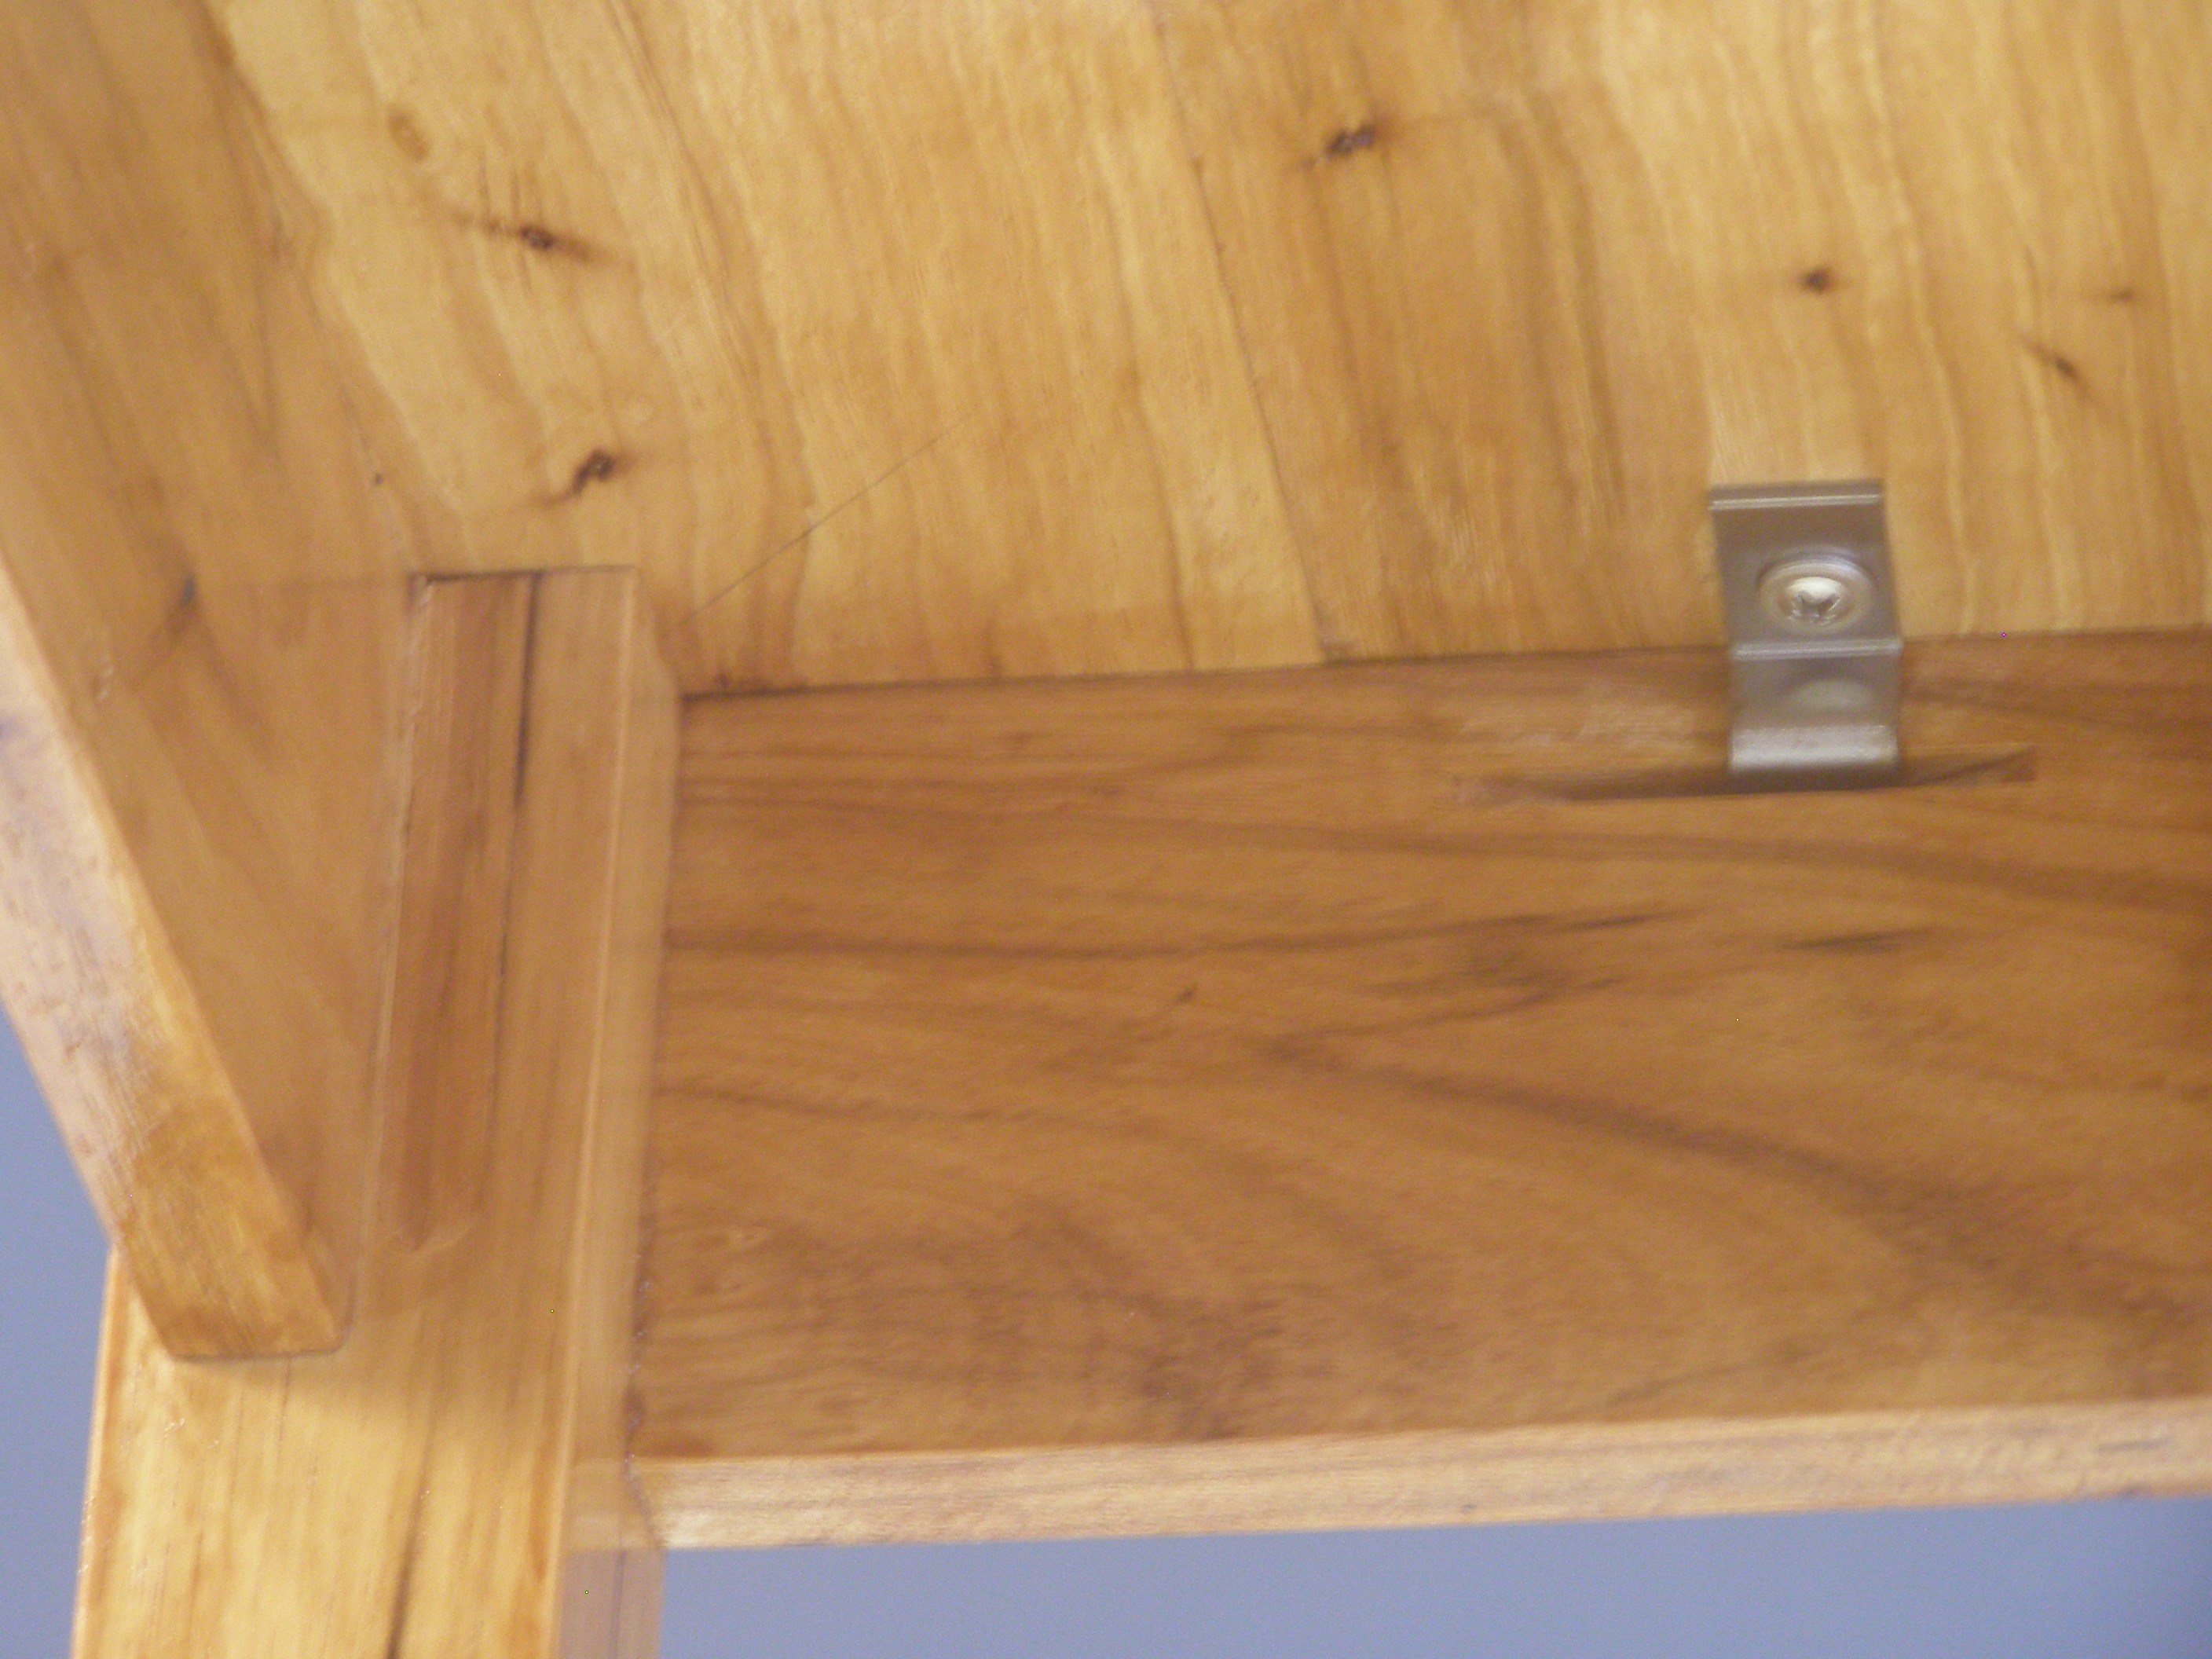 underside of inished table